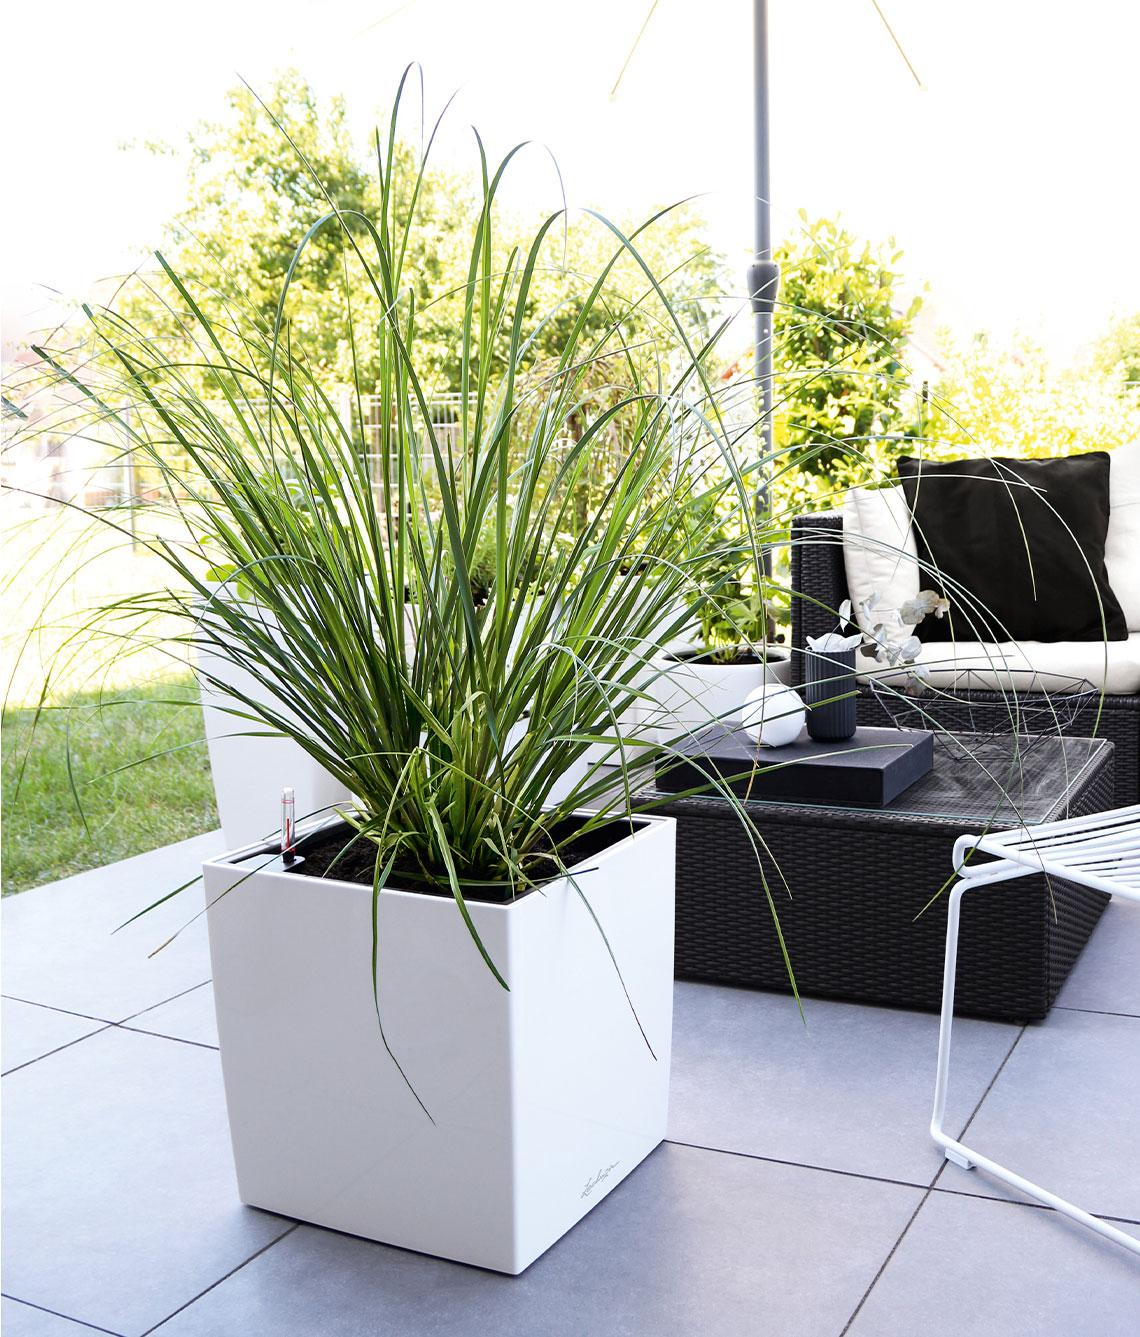 'White CUBE Premium planted with tall